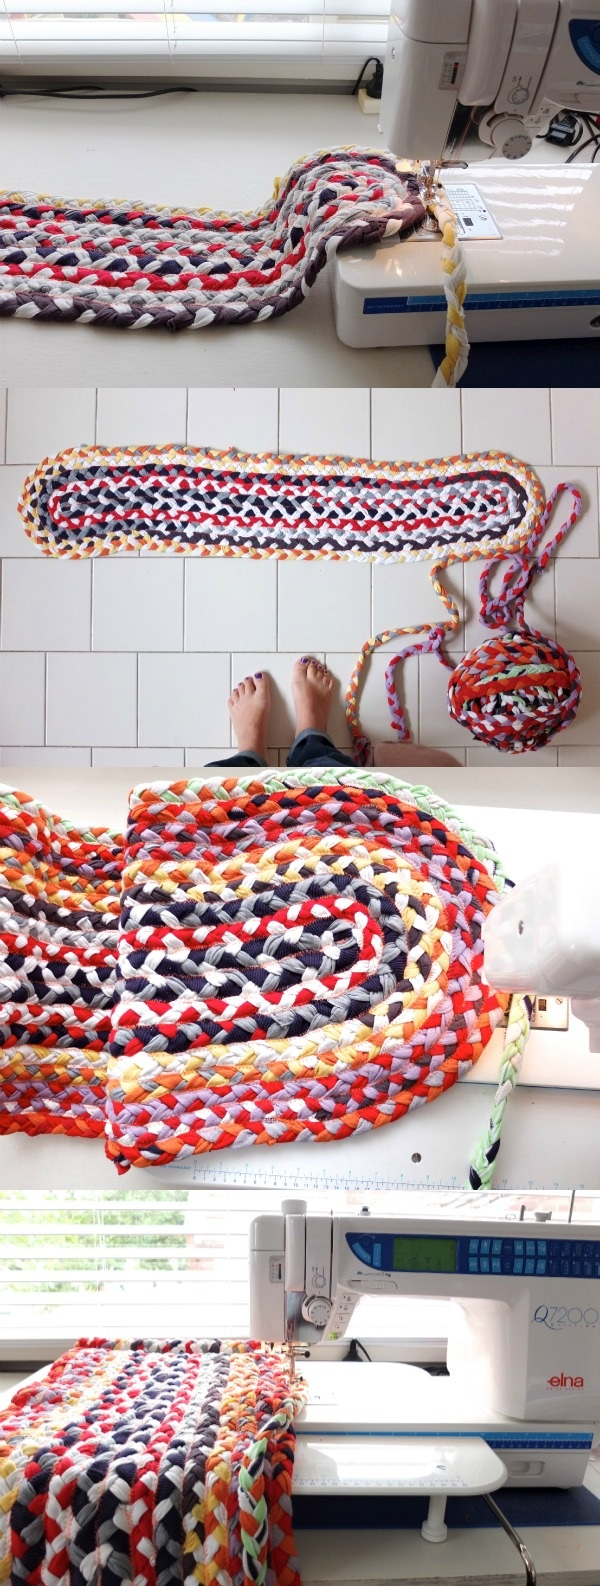 How to Make Braided Rugs with Old T-Shirt (7)